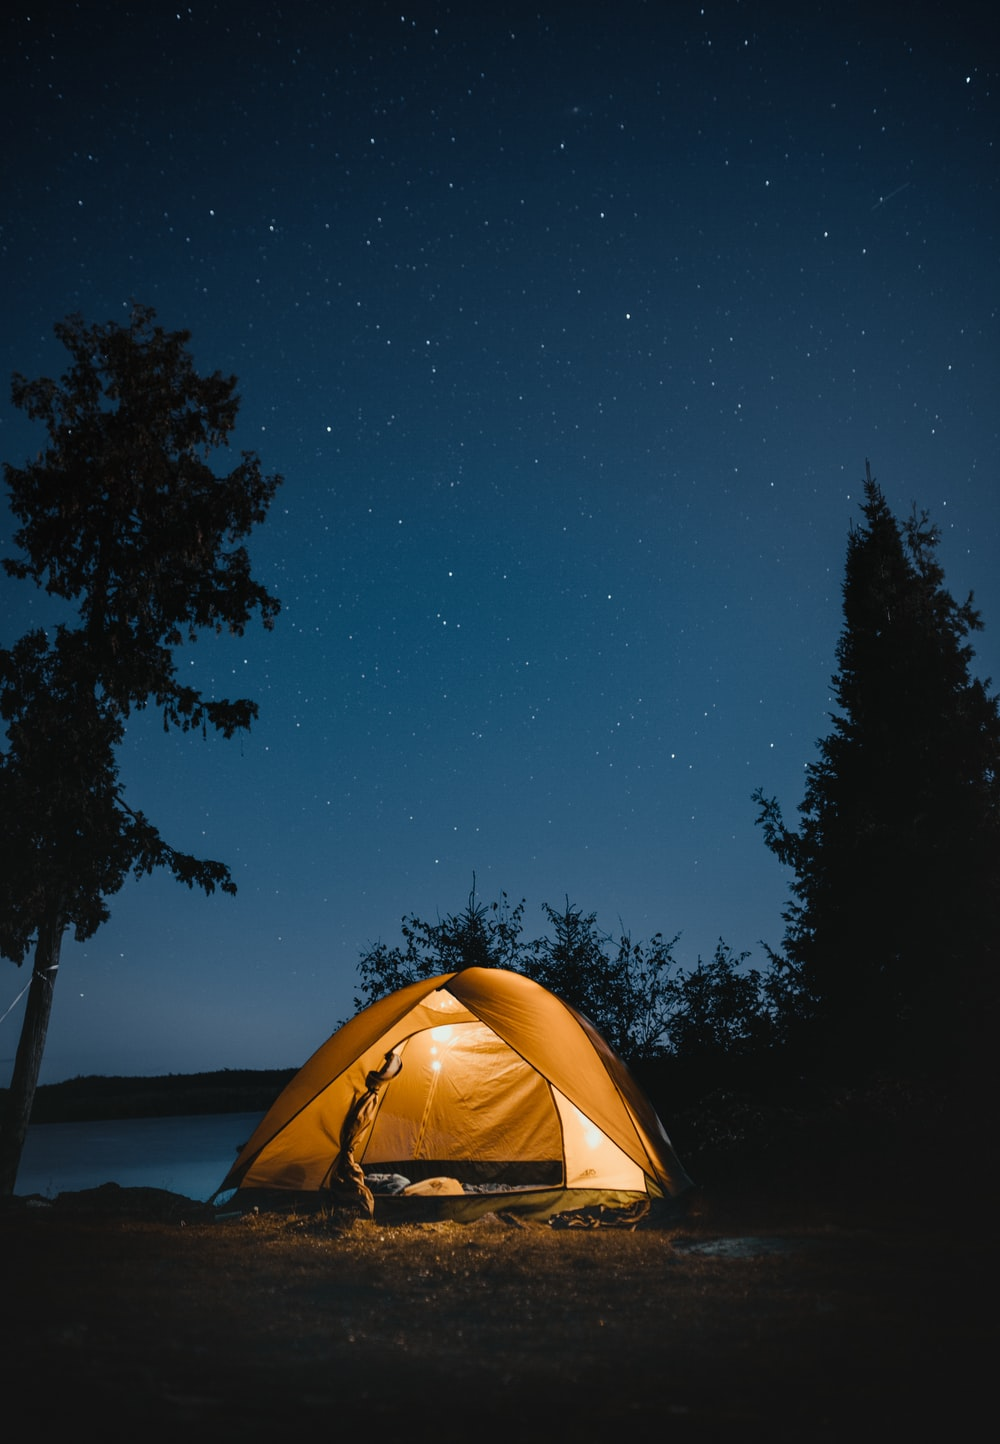 brown dome tent near trees at night